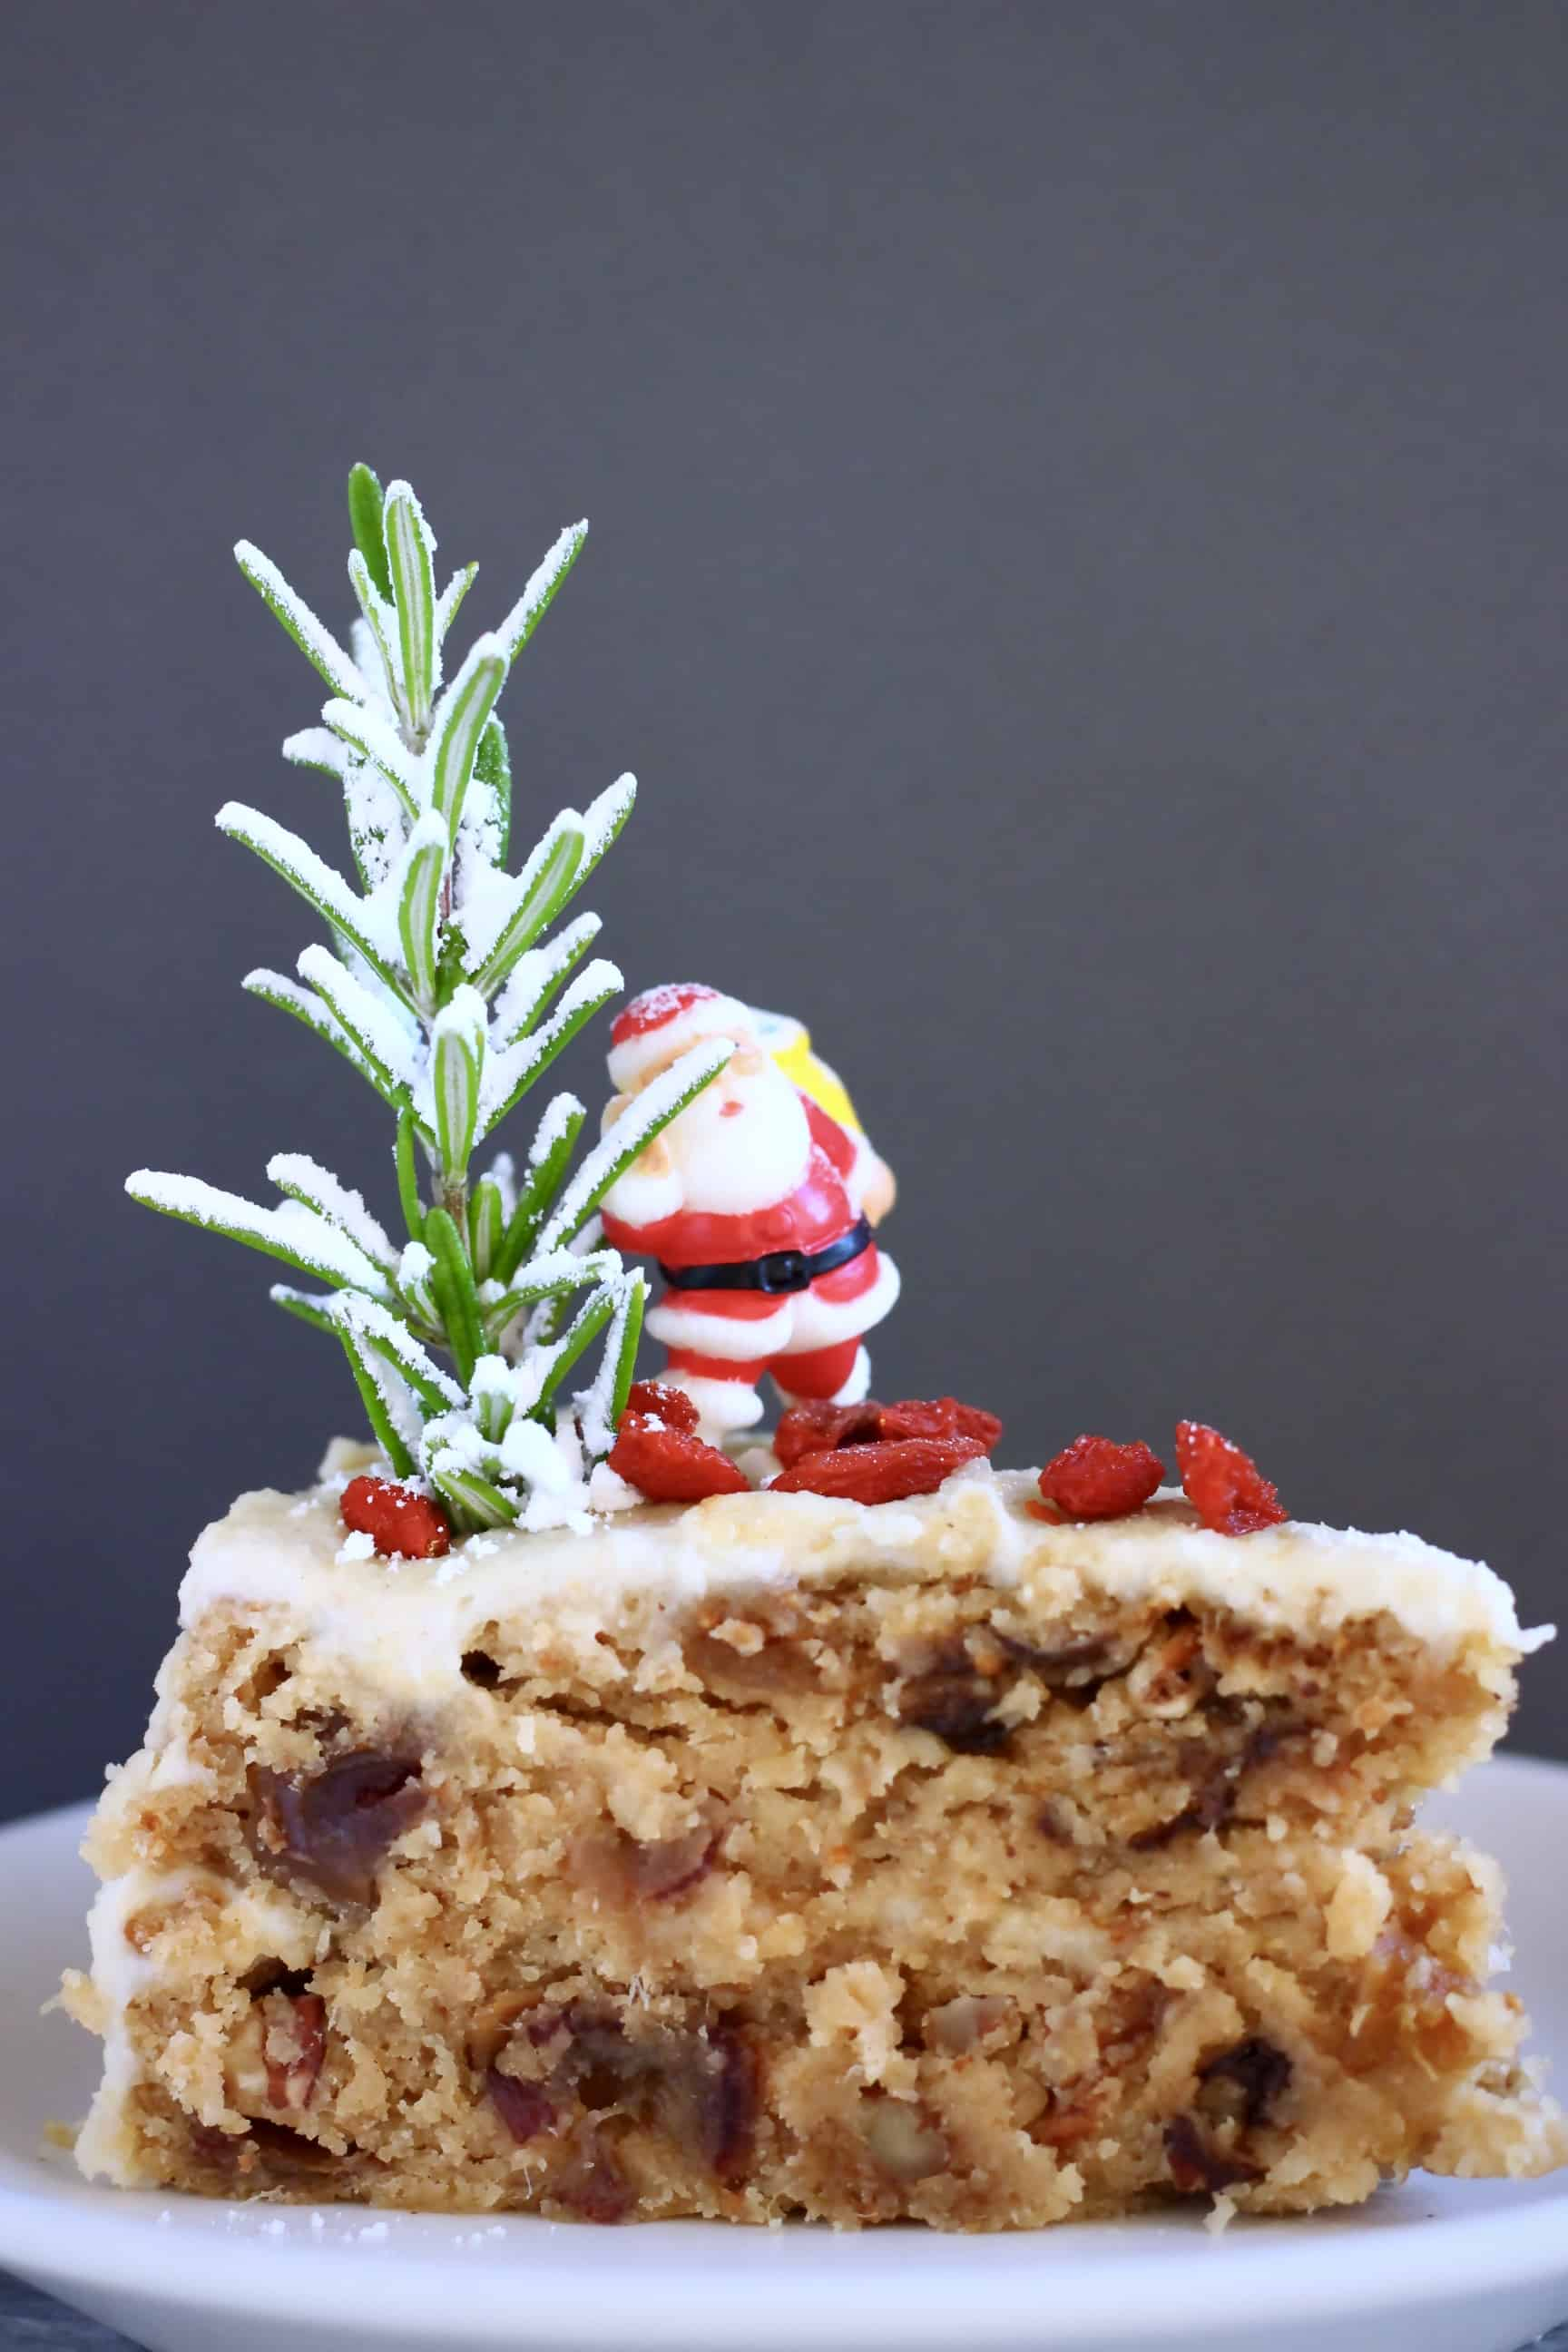 A slice of gluten-free vegan Christmas fruit cake covered in white buttercream topped with a plastic Santa